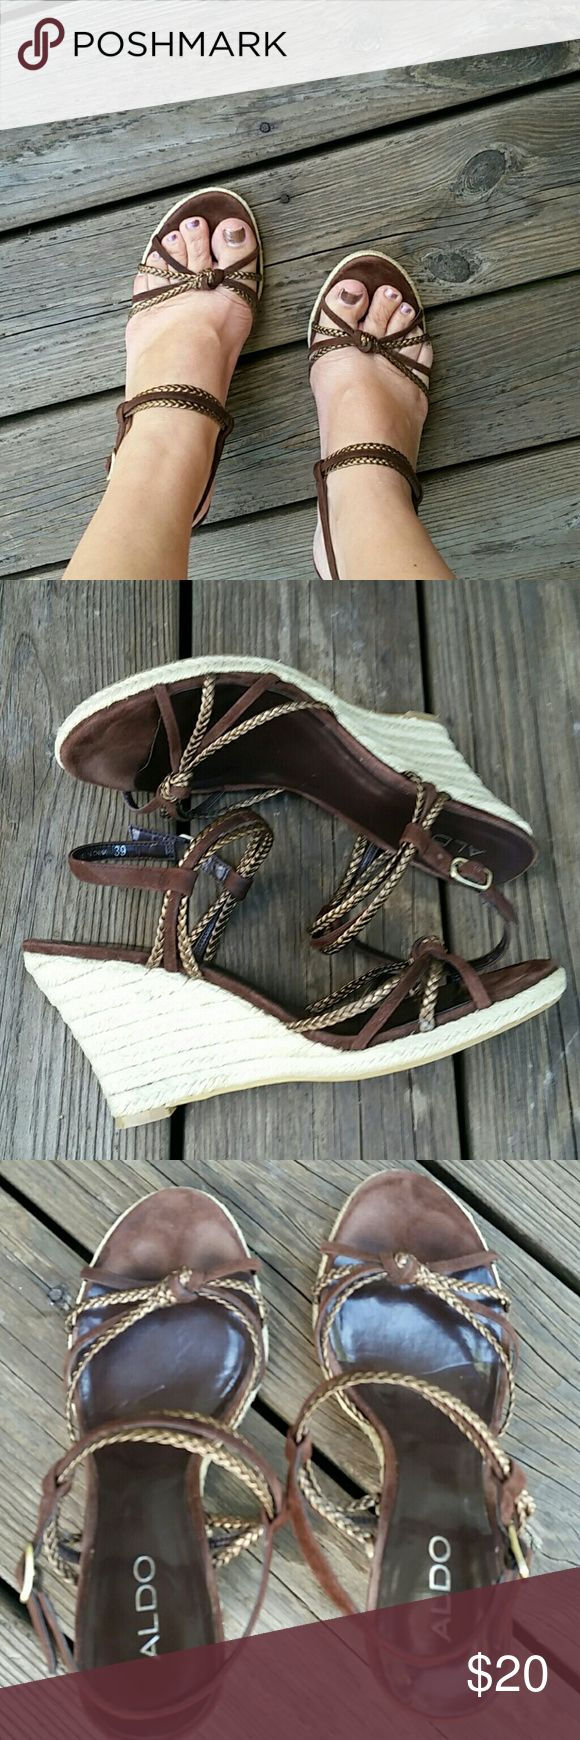 Shoe sale Aldo wedge espadrille sandal Moderately worn. Great condition.  Wedge sandal. Aldo Shoes Espadrilles